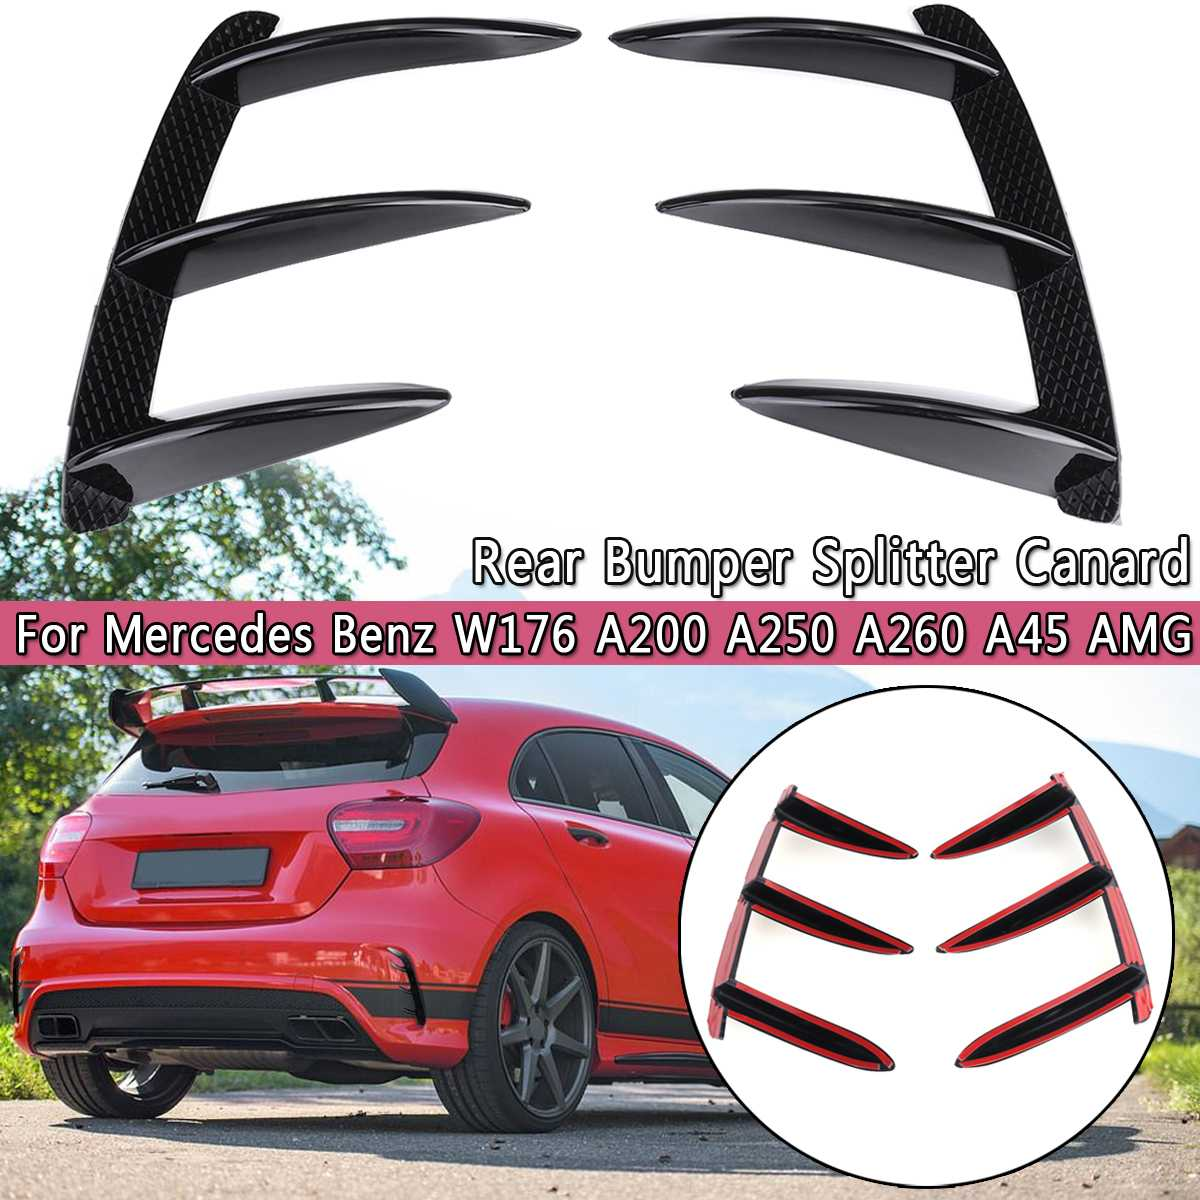 1Pair Car Black ABS Rear Bumper Splitter Spoilers Canard For Mercedes for Benz W176 <font><b>A200</b></font> A250 A260 A45 for <font><b>AMG</b></font> image